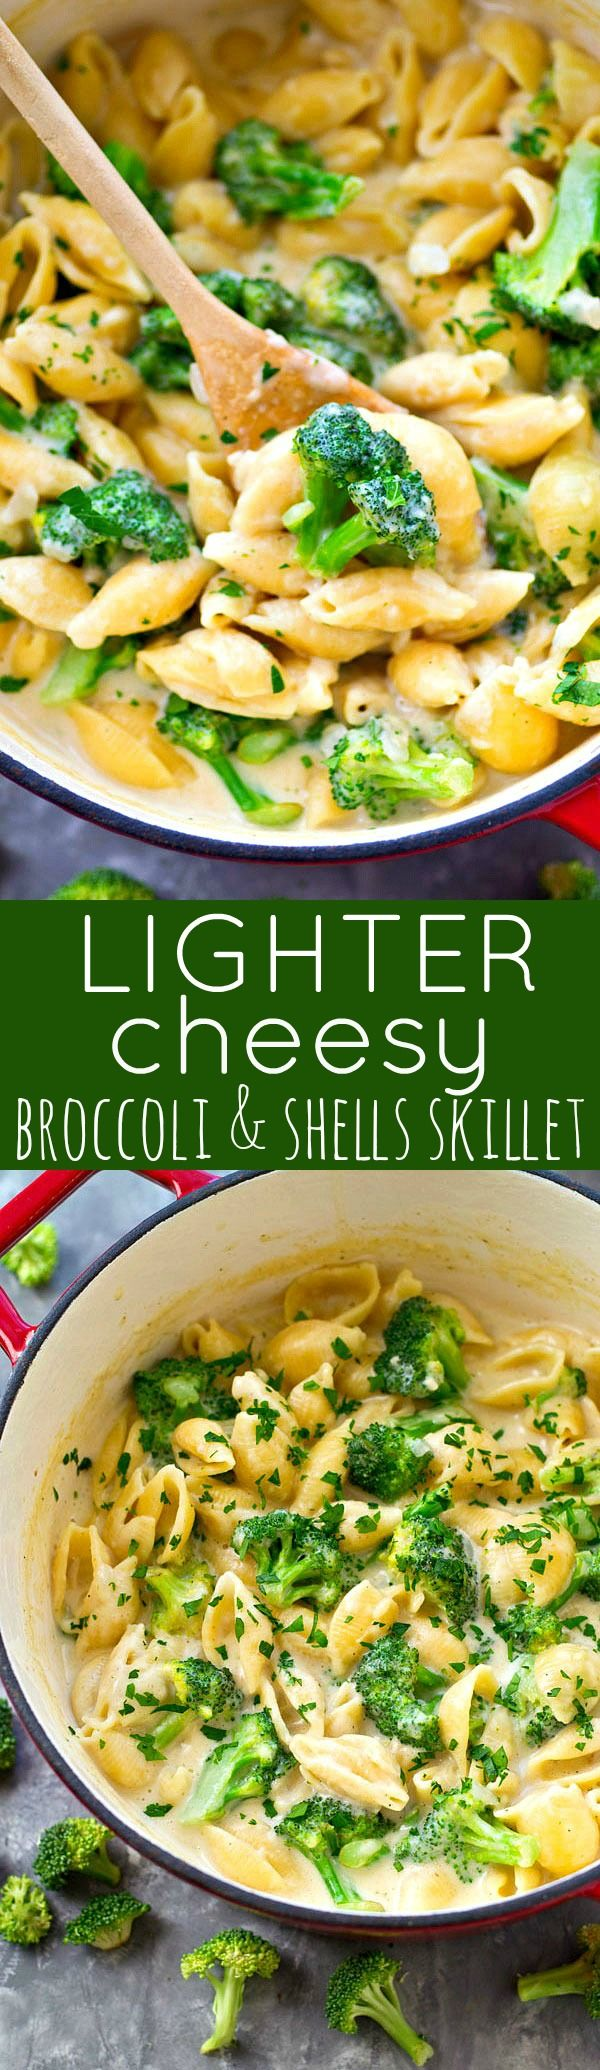 This lightened-up cheesy broccoli and shells skillet cooks up in one pot in less than 30 minutes and is only 350 calories per serving! The ultimately easy weeknight comfort food.